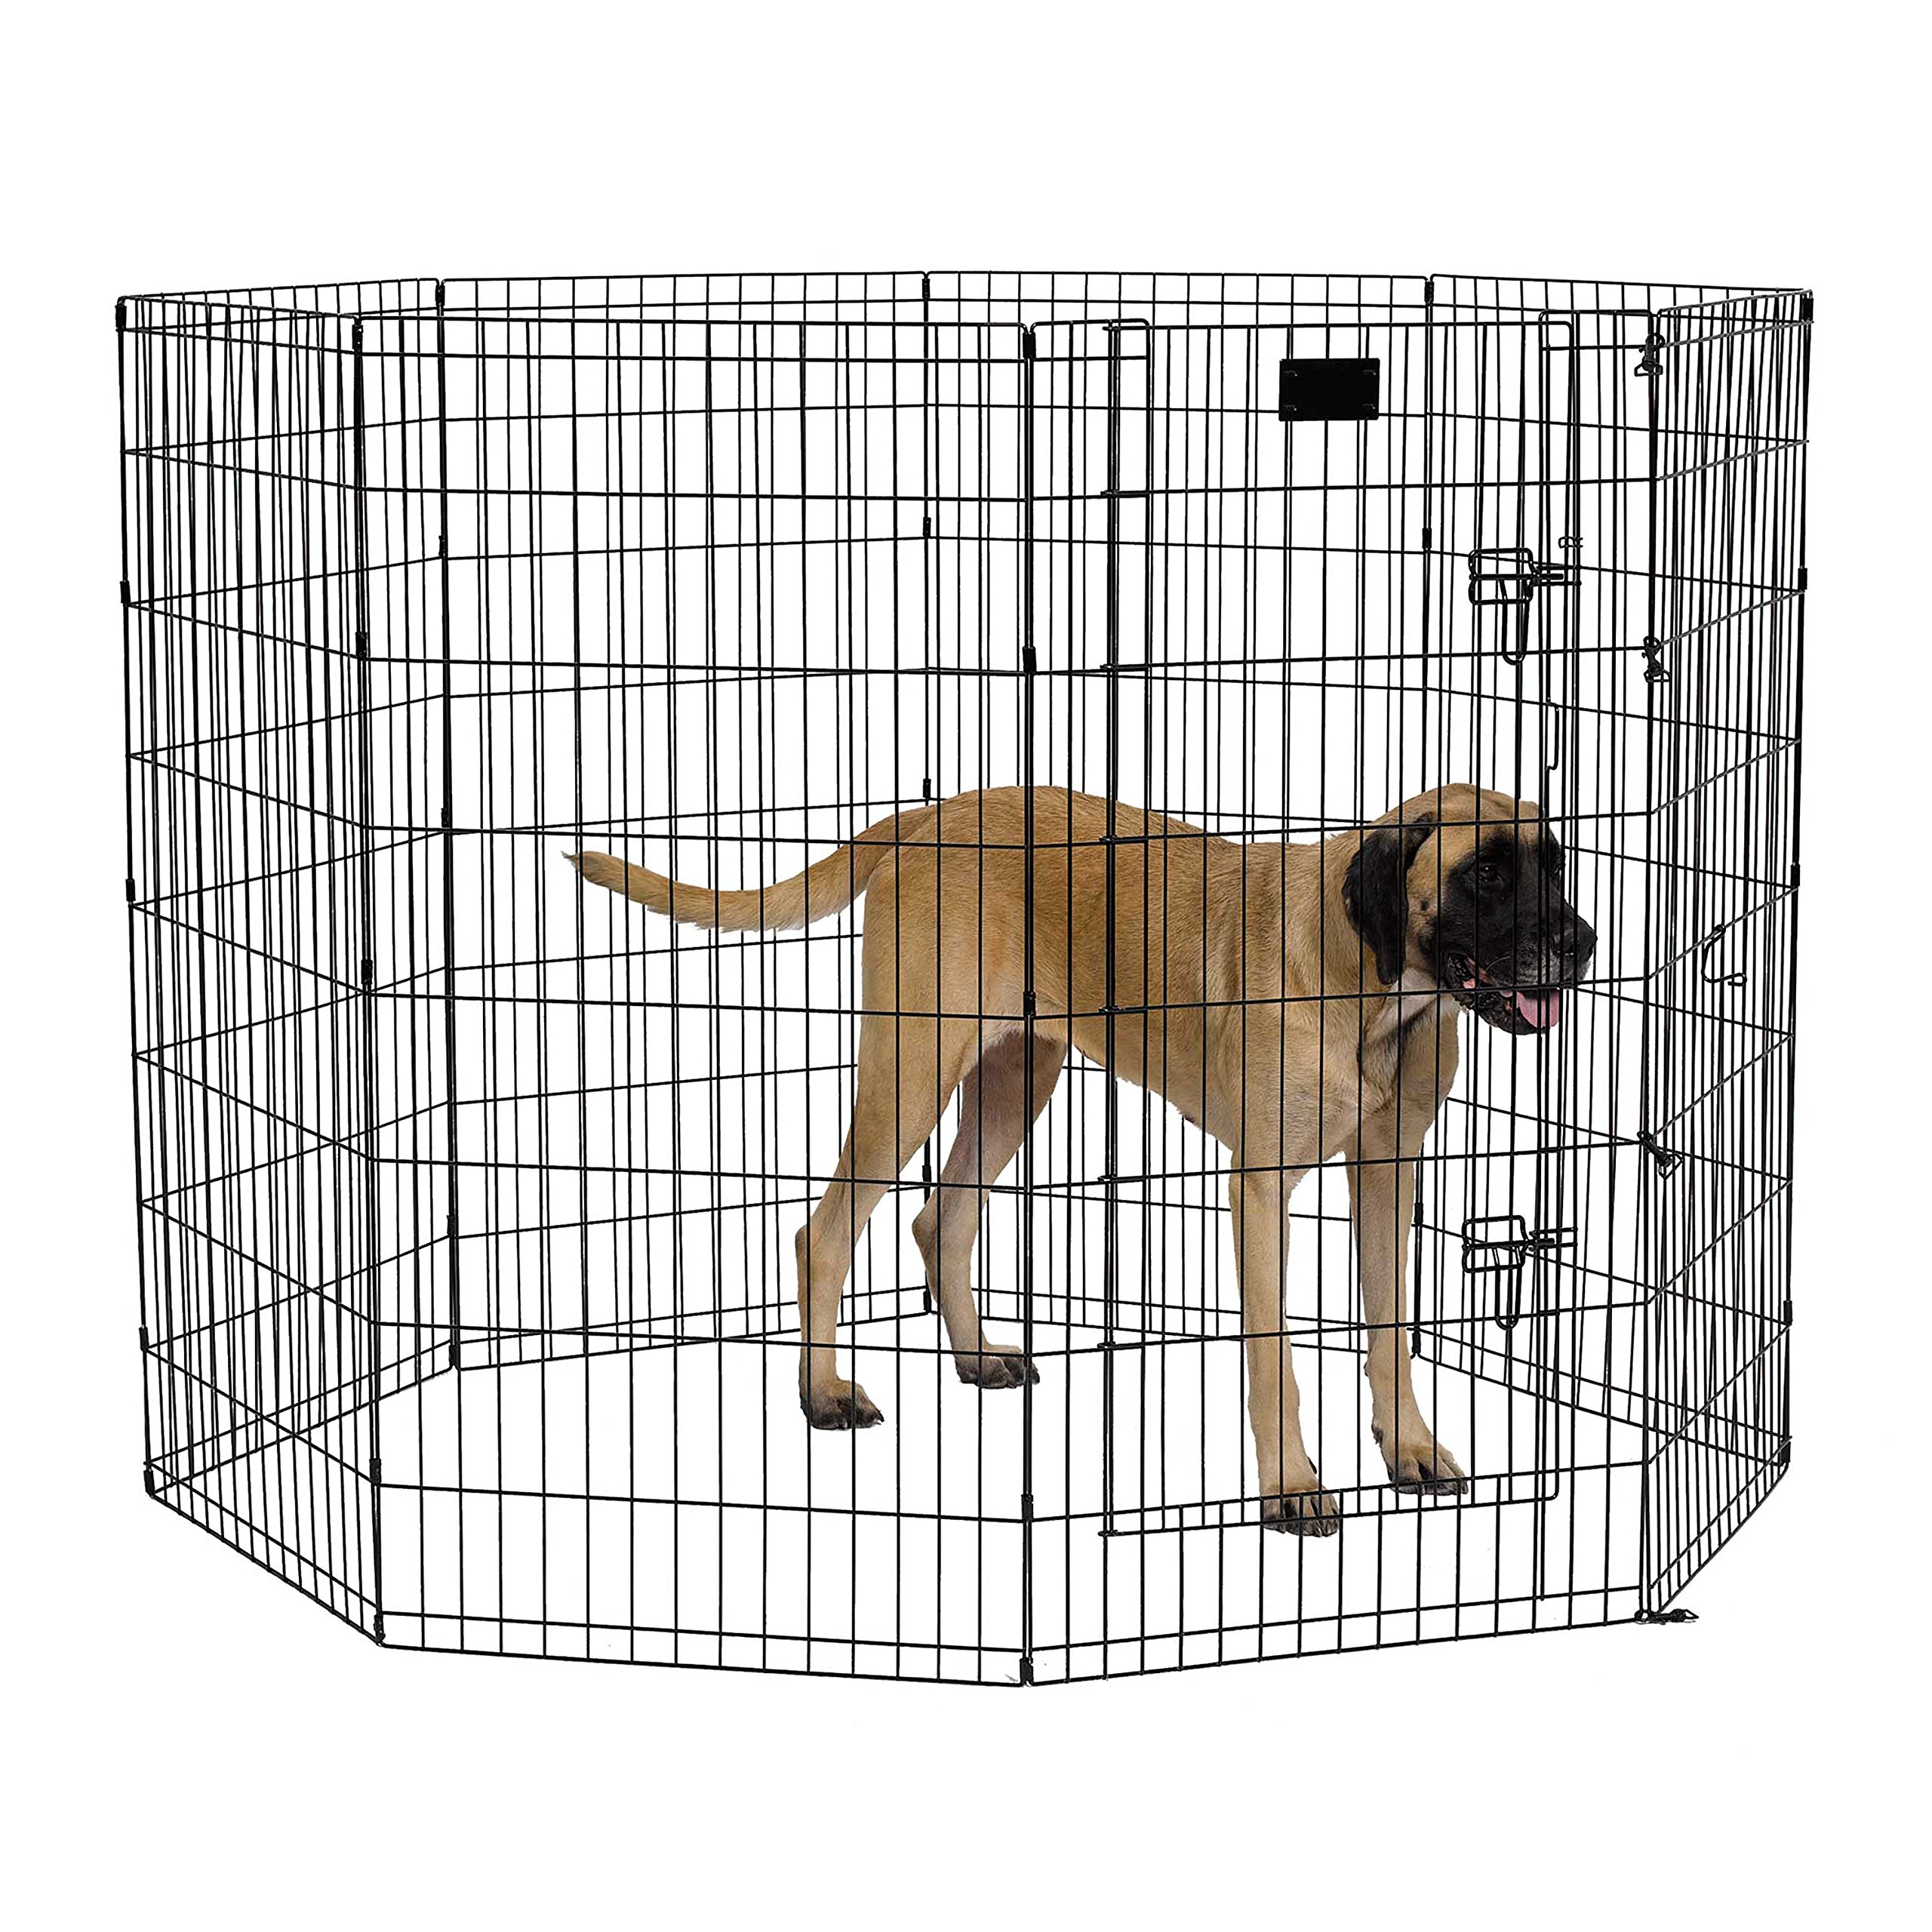 MidWest Foldable Metal Exercise Pen / Pet Playpen, Black w/ door, 24''W x 48''H by MidWest Homes for Pets